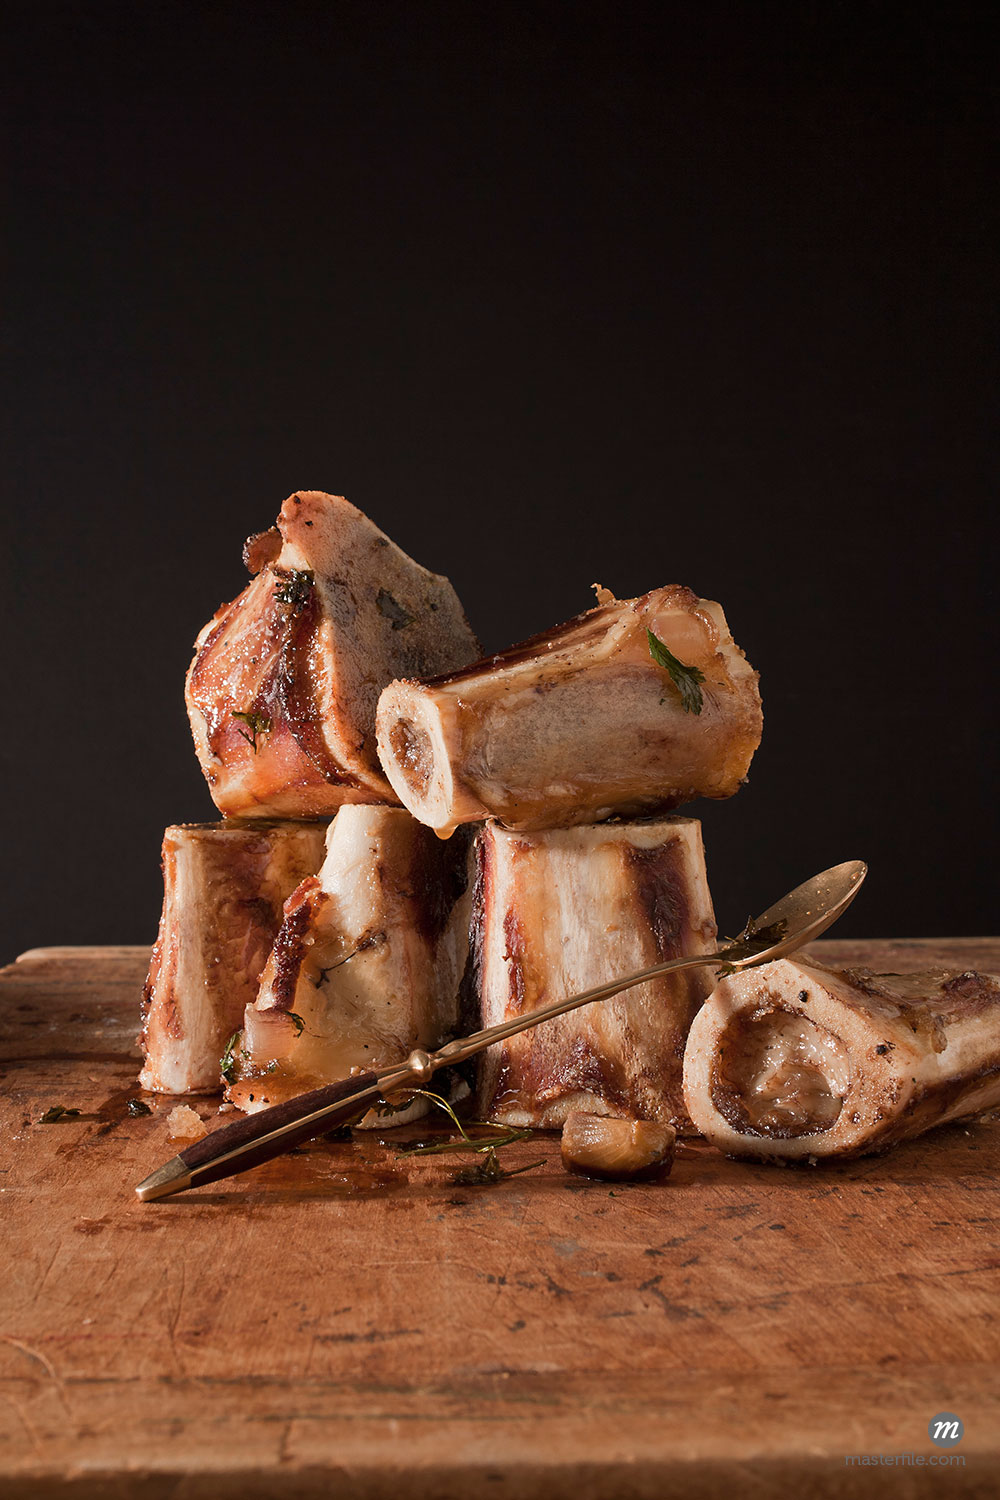 Still Life of Cooked Beef Marrow Bones  ©  Jennifer Burrell / Masterfile